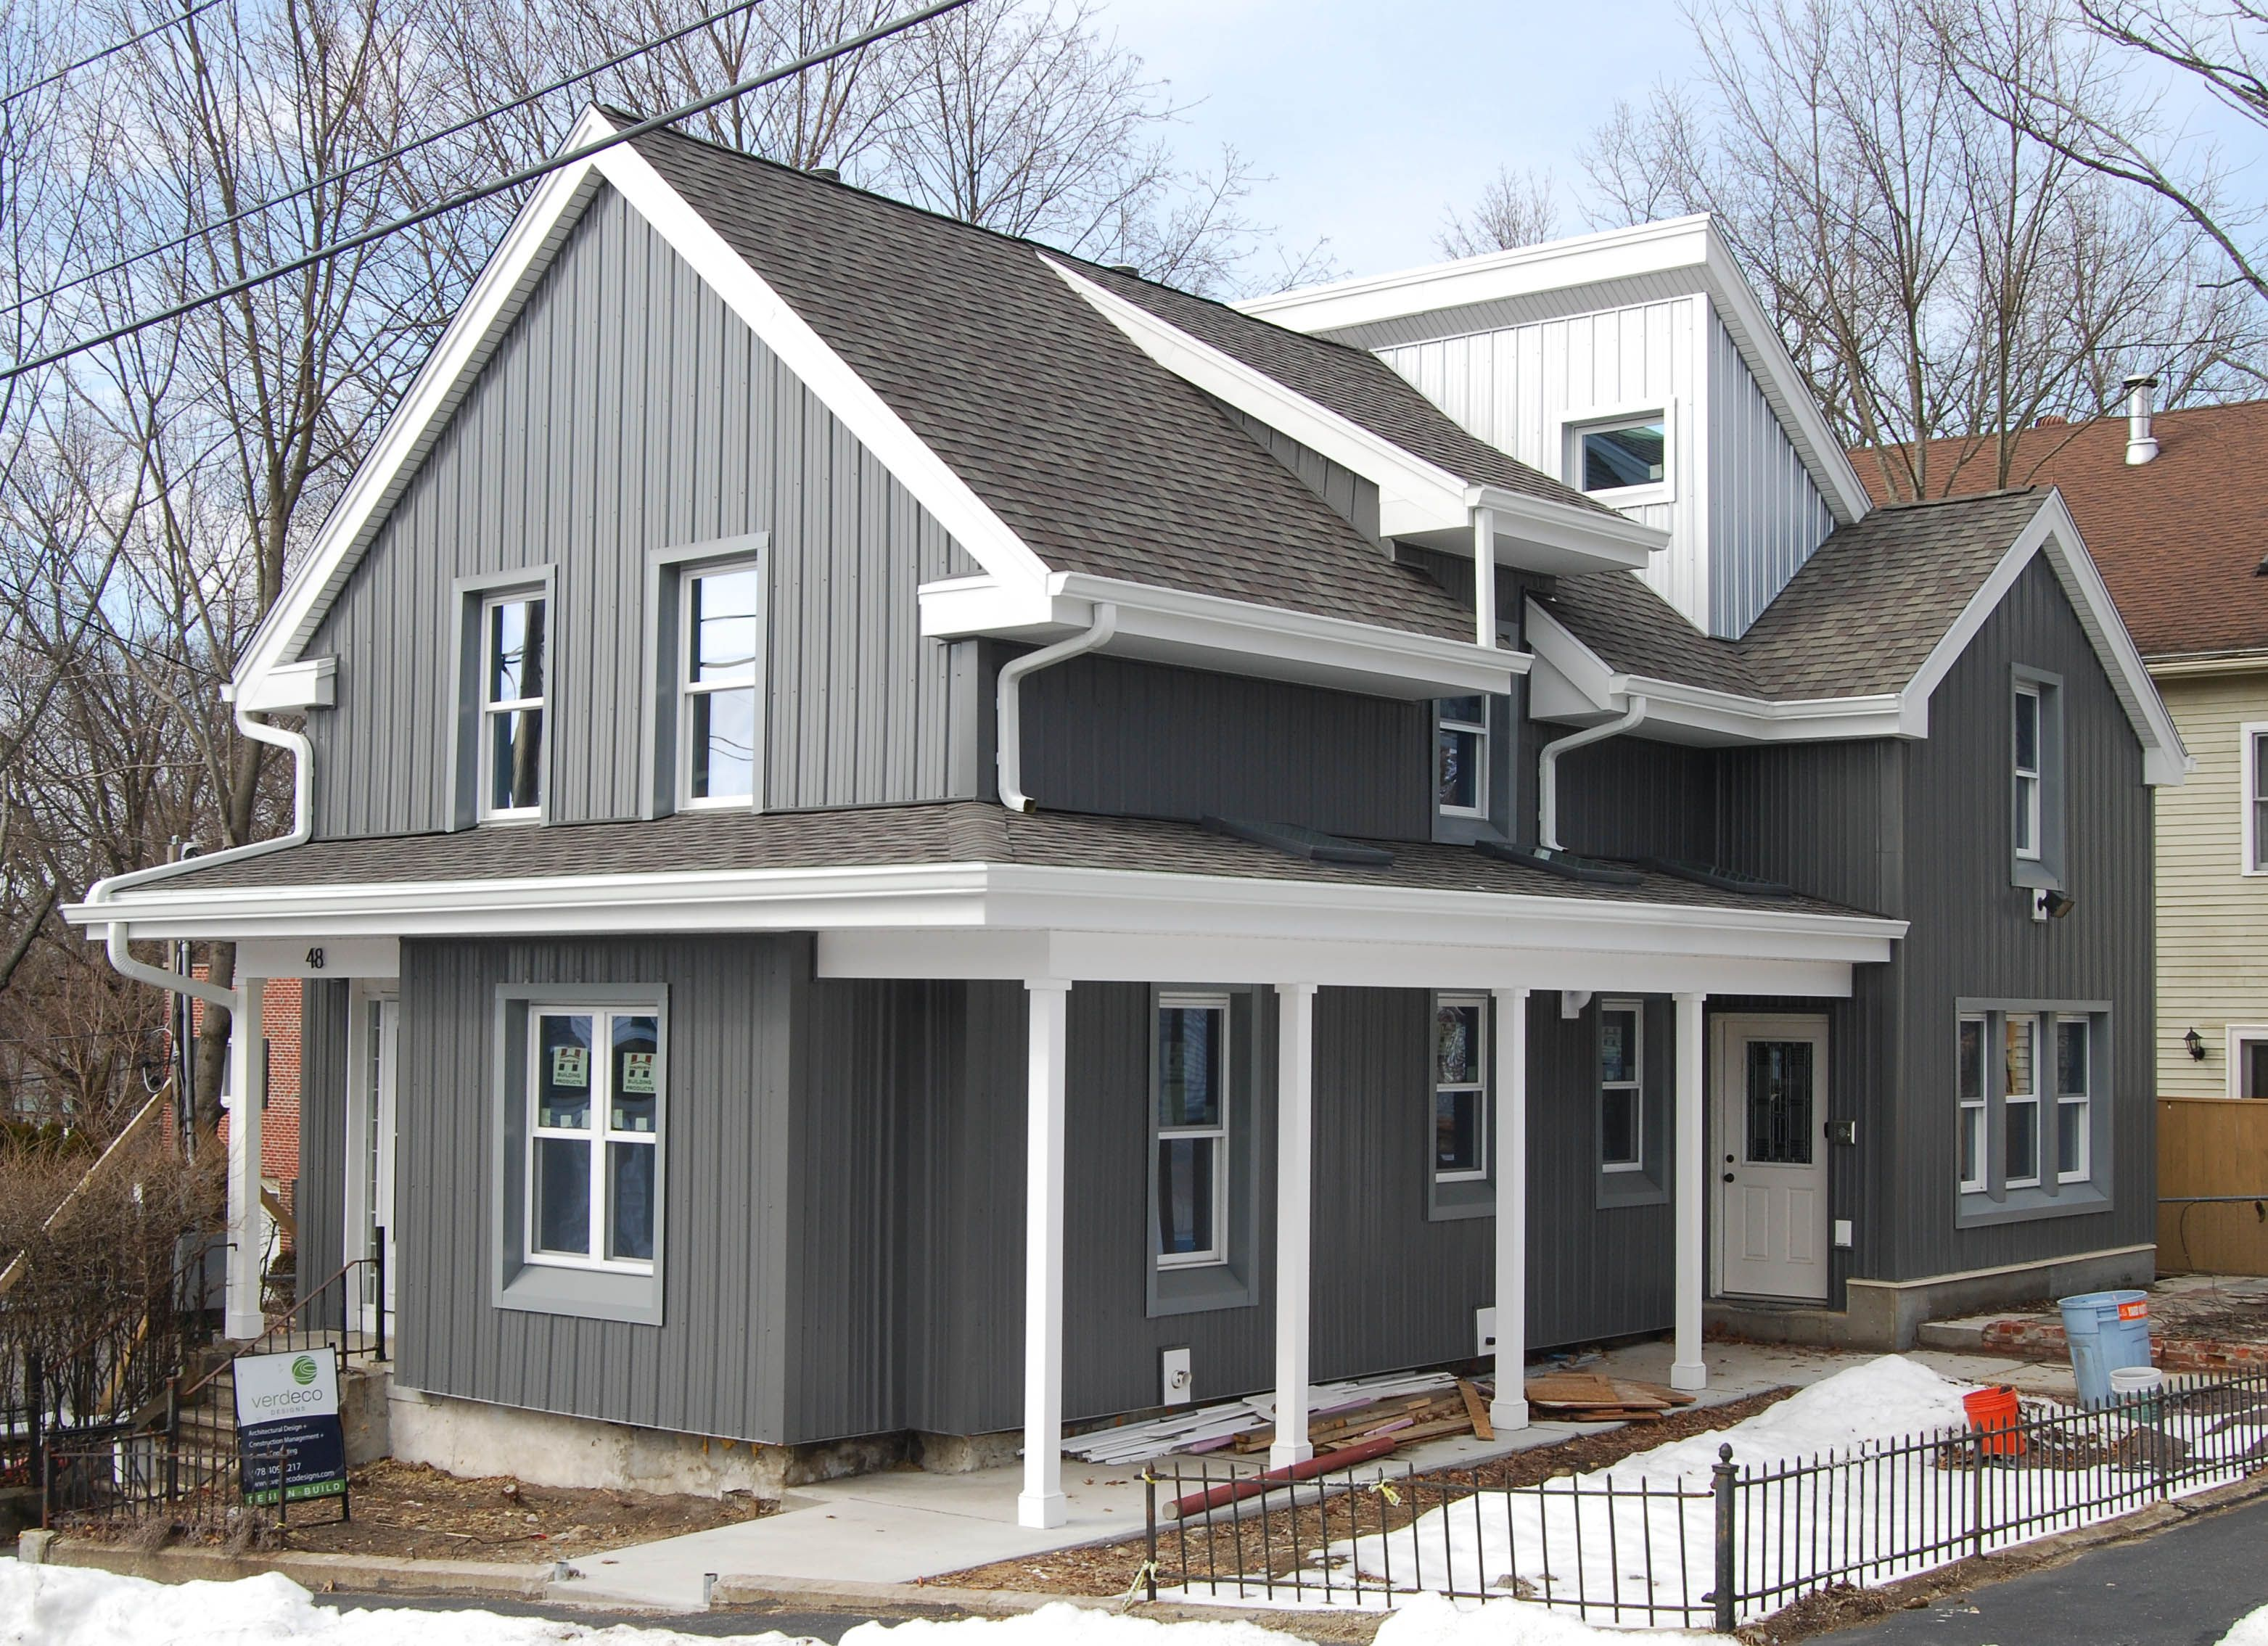 7 Popular Siding Materials To Consider: The Boldness Of The Metal Siding Is Softened By The Muted